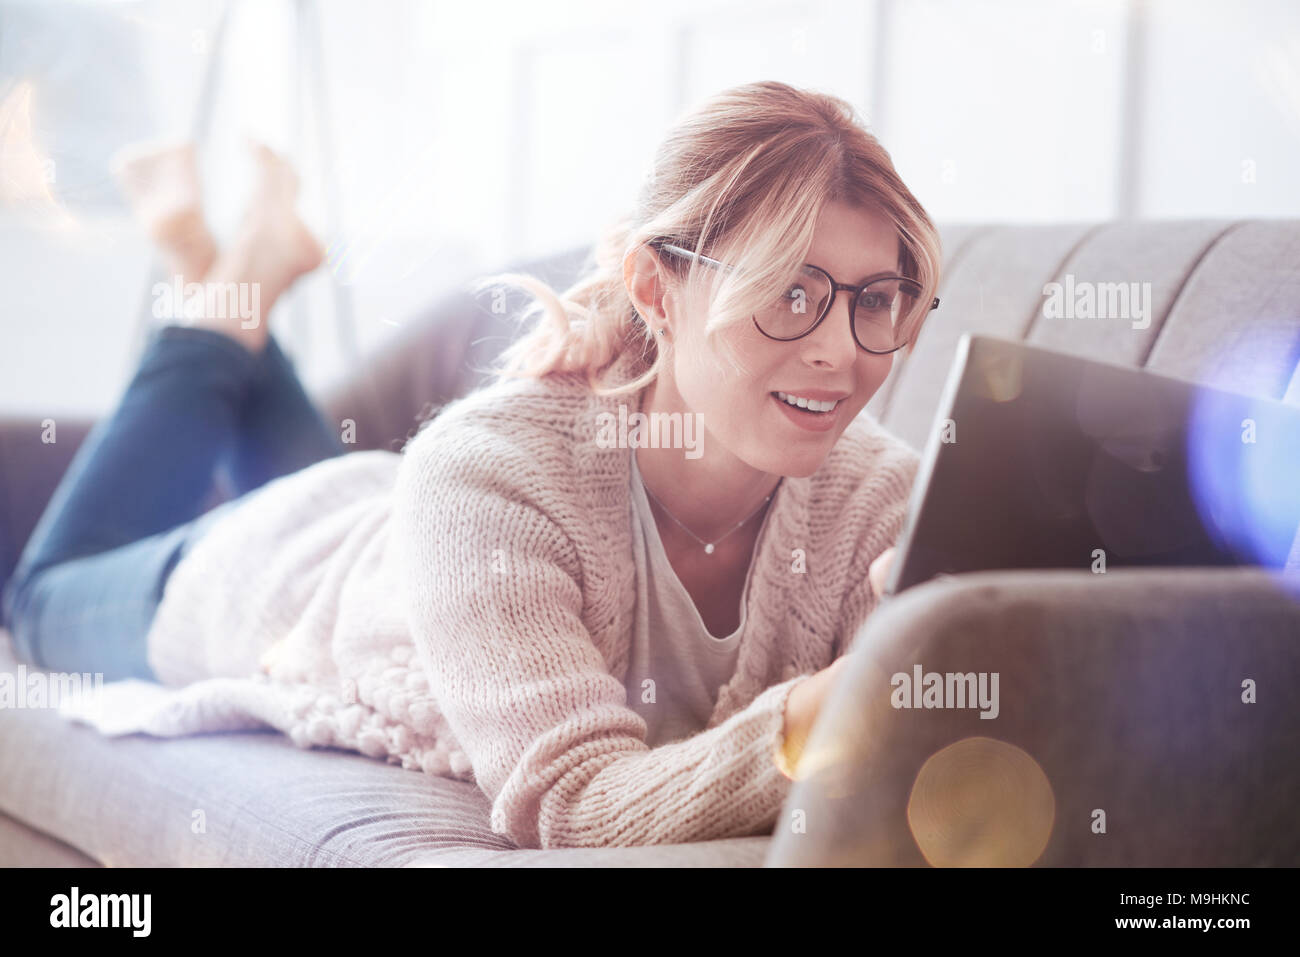 Cheerful pretty woman surfing on the Internet - Stock Image